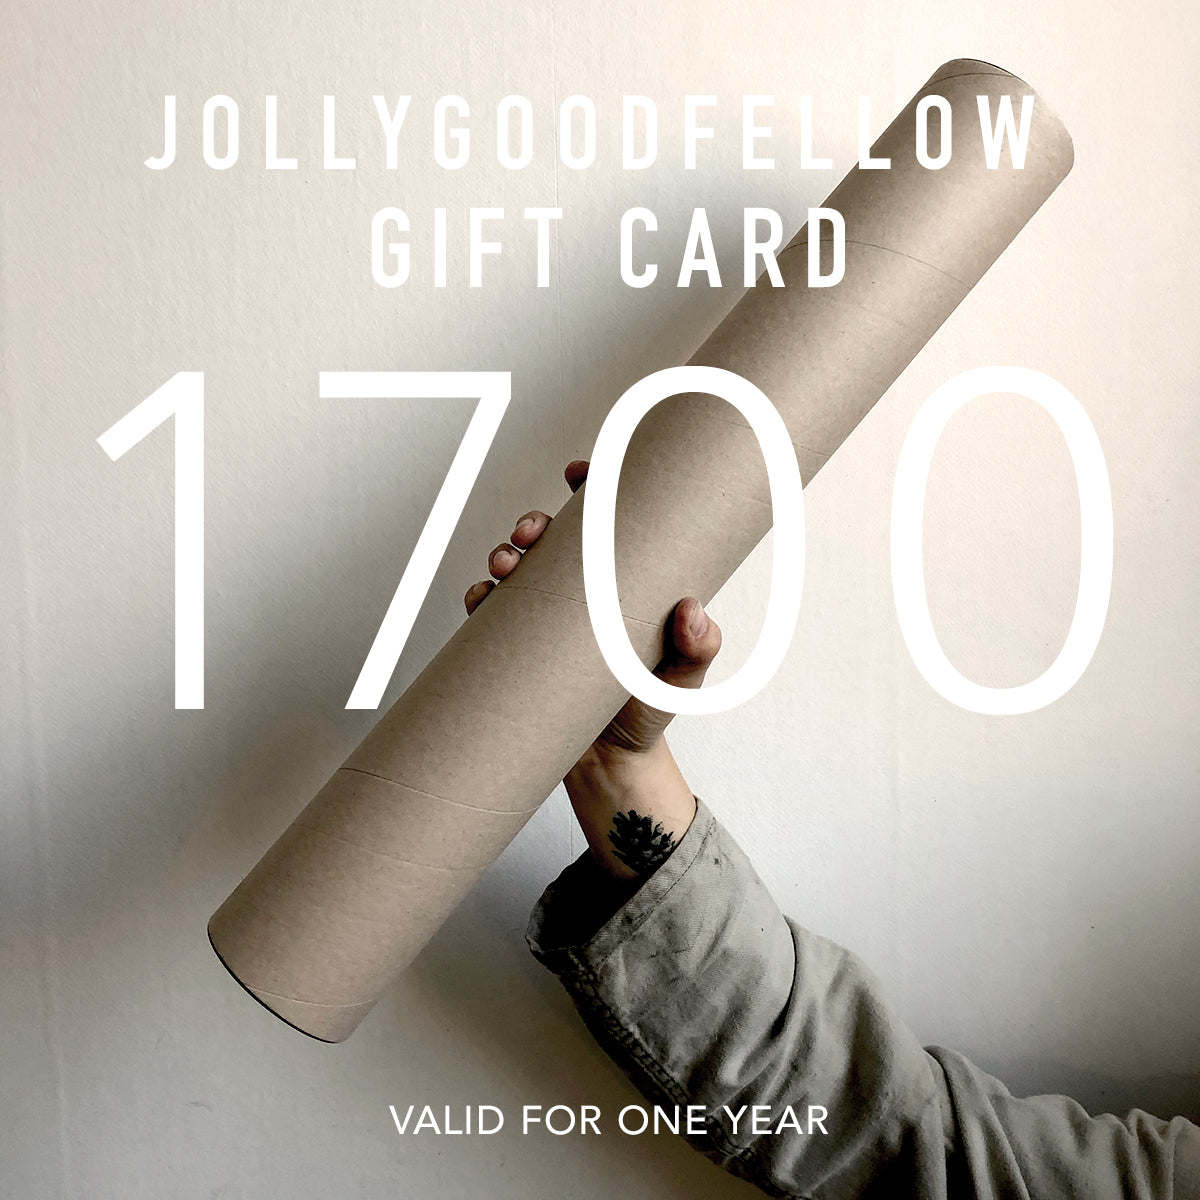 Jollygoodfellow Gift Card